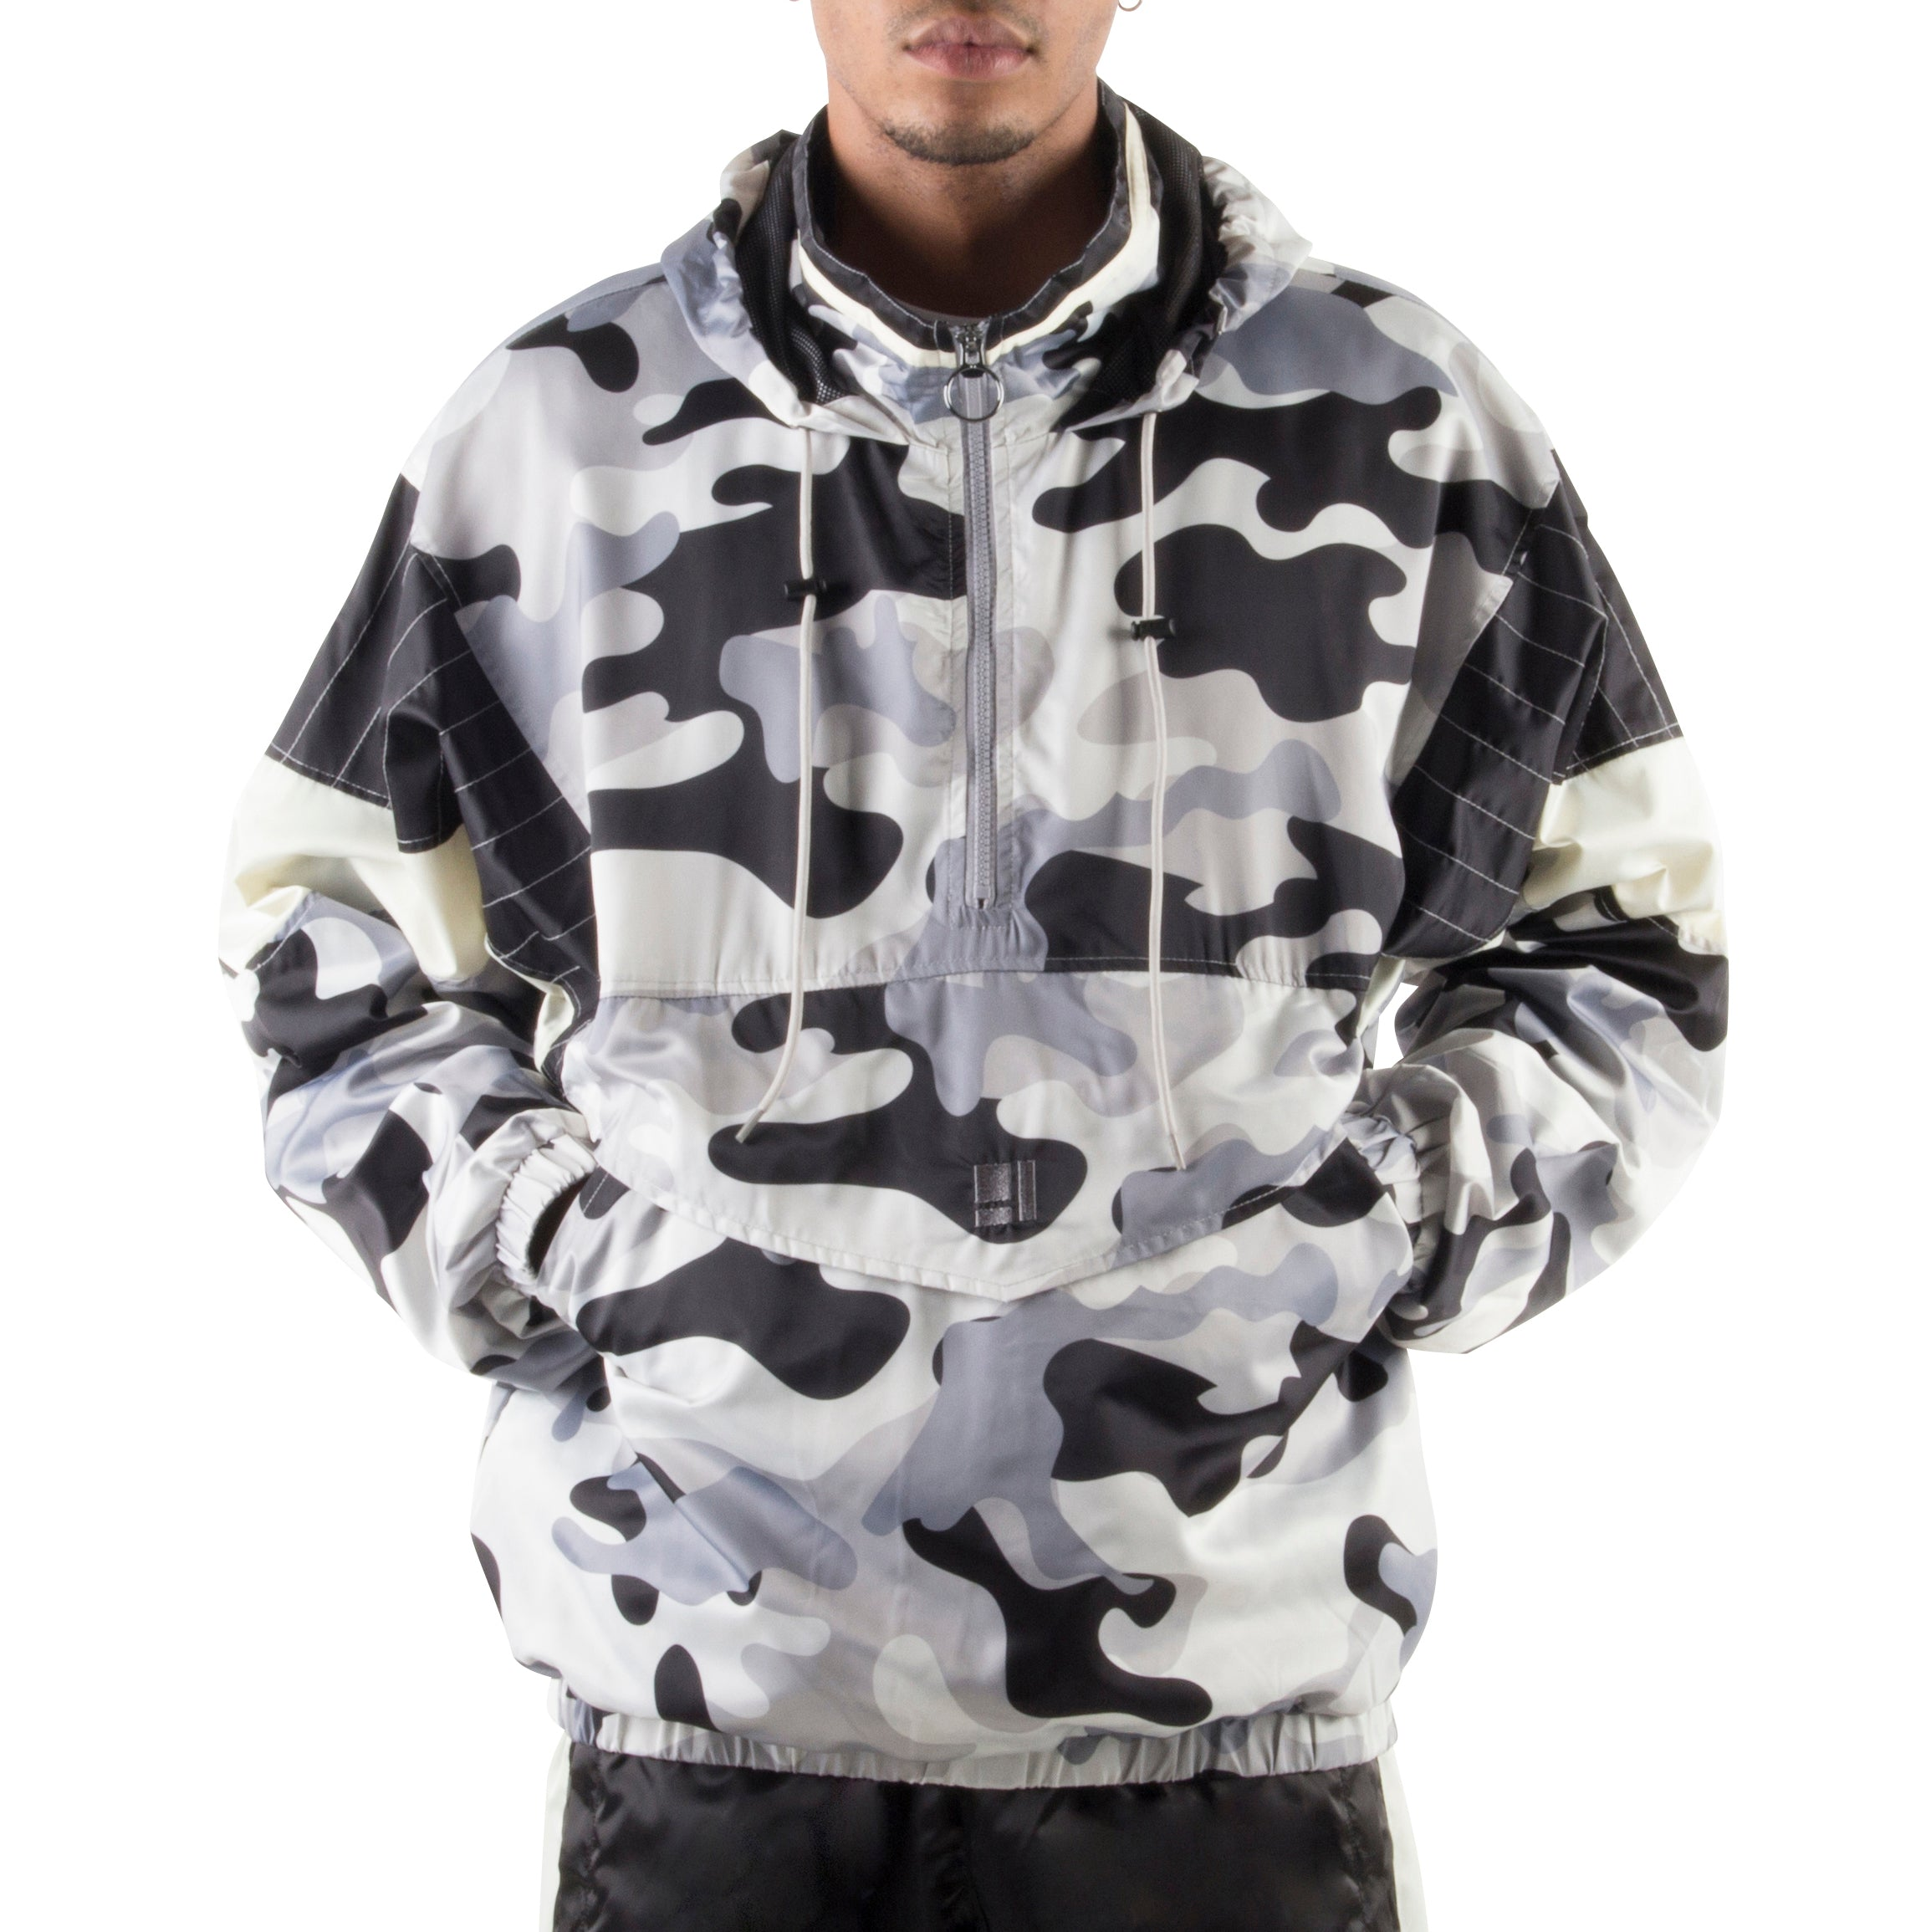 GREY CAMO LIGHT PULLOVER JACKET